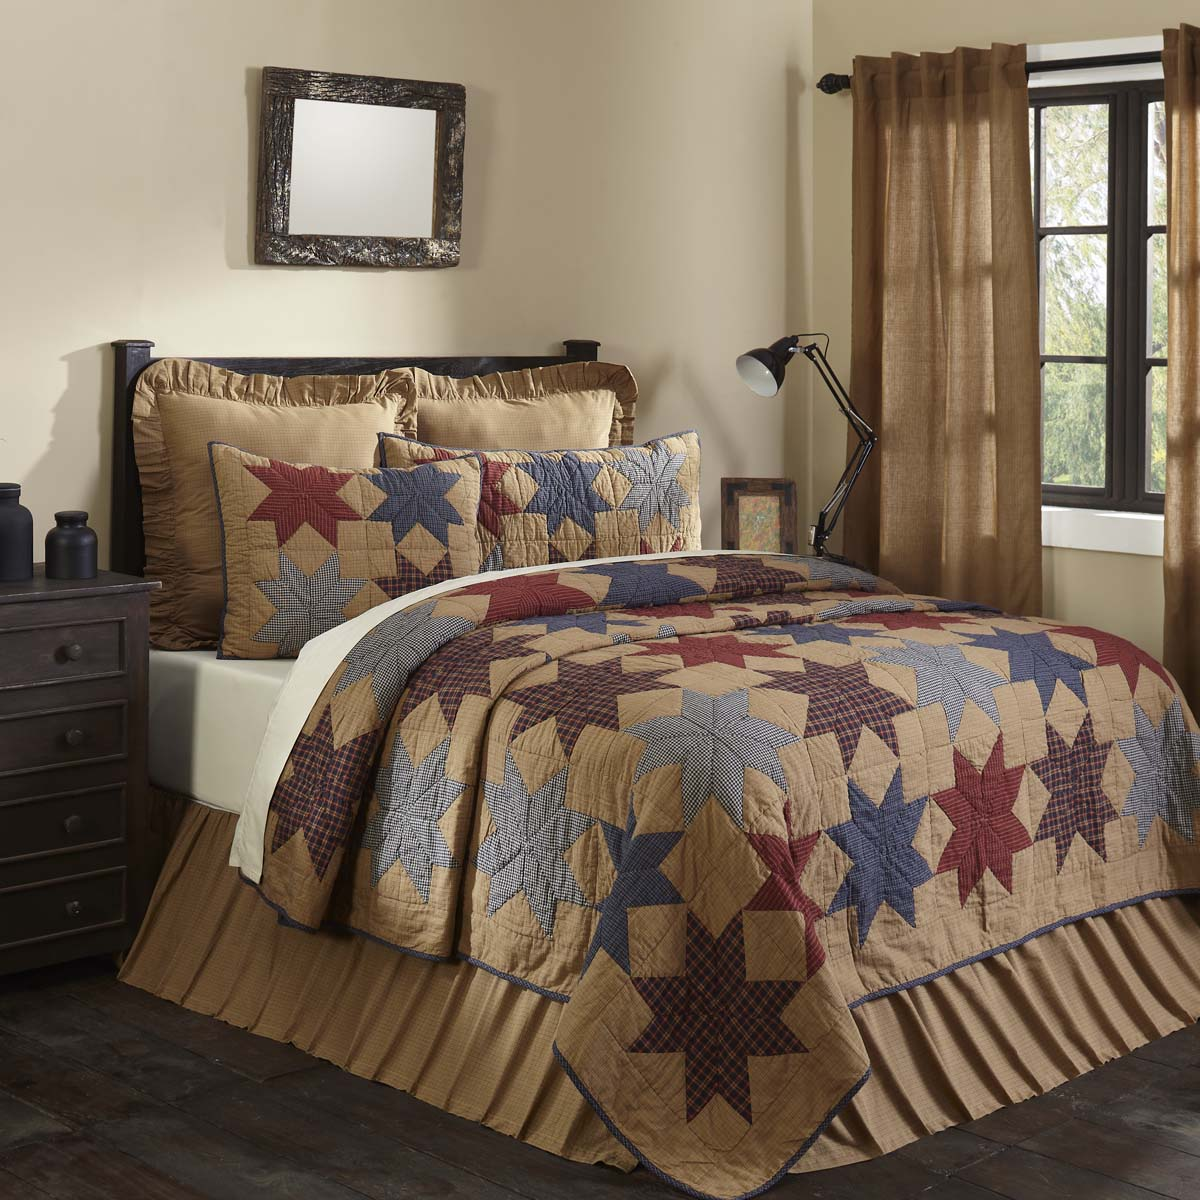 Kindred Star Queen Quilt 90Wx90L